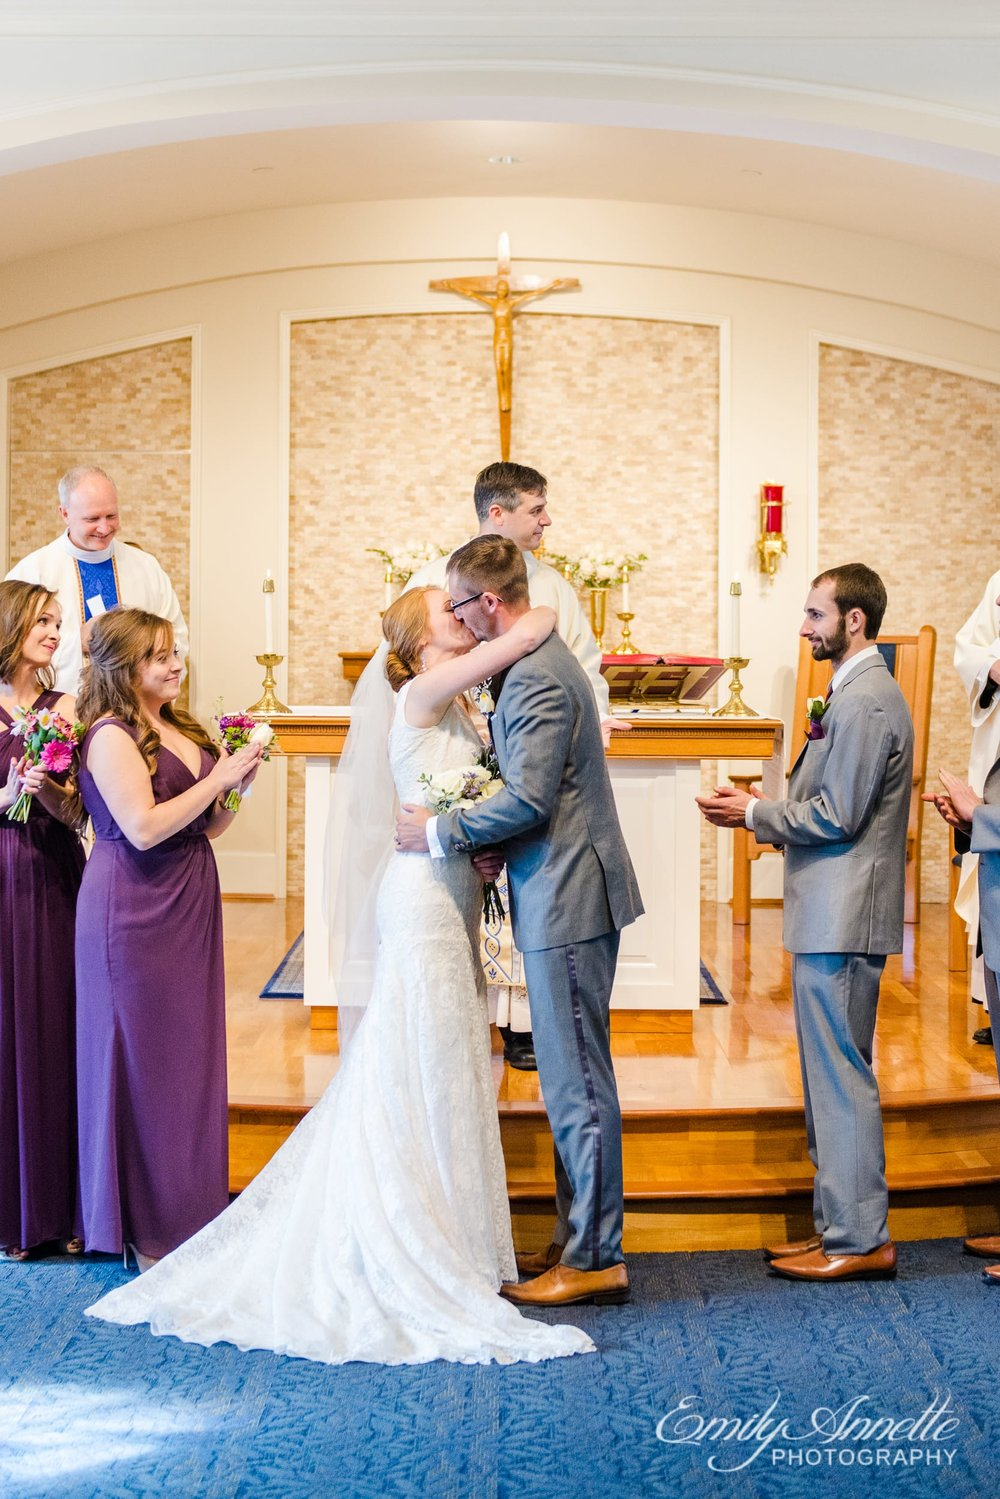 The bride and groom share their first kiss as husband and wife during their Catholic wedding ceremony at Marymount University's Sacred Heart of Mary Chapel in Arlington, Virginia